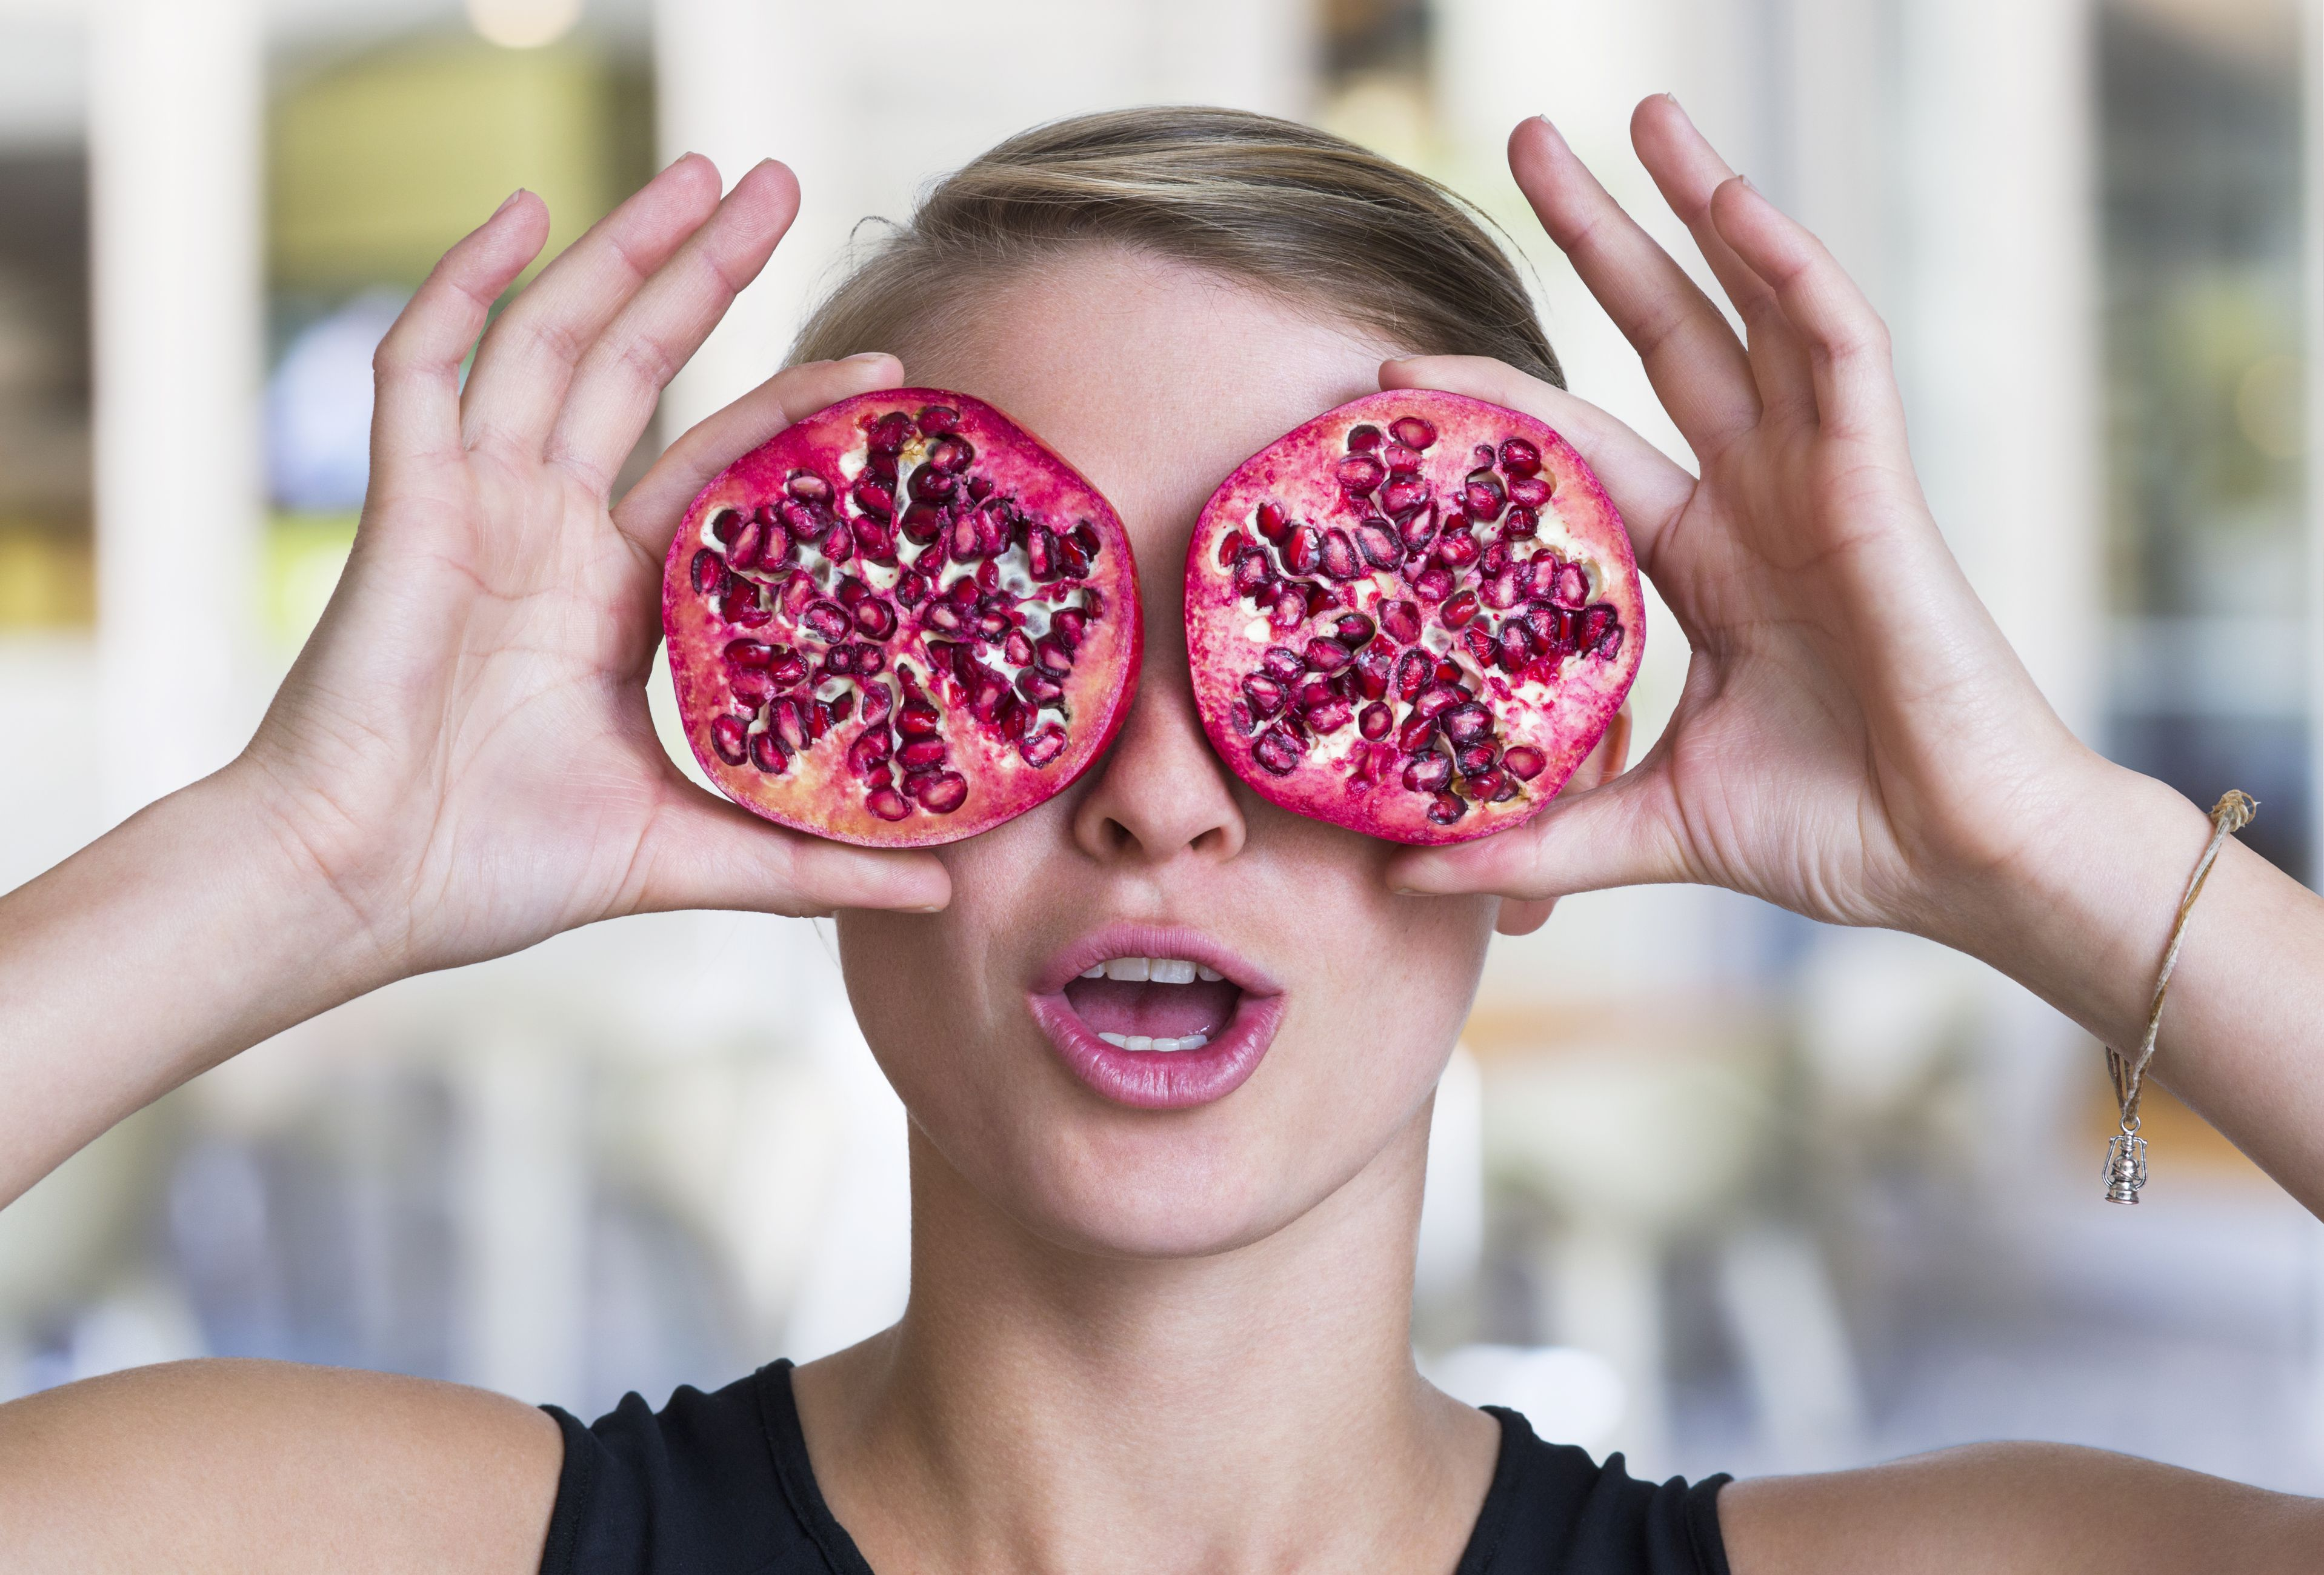 Woman holding two pomegranate halves up to her eyes